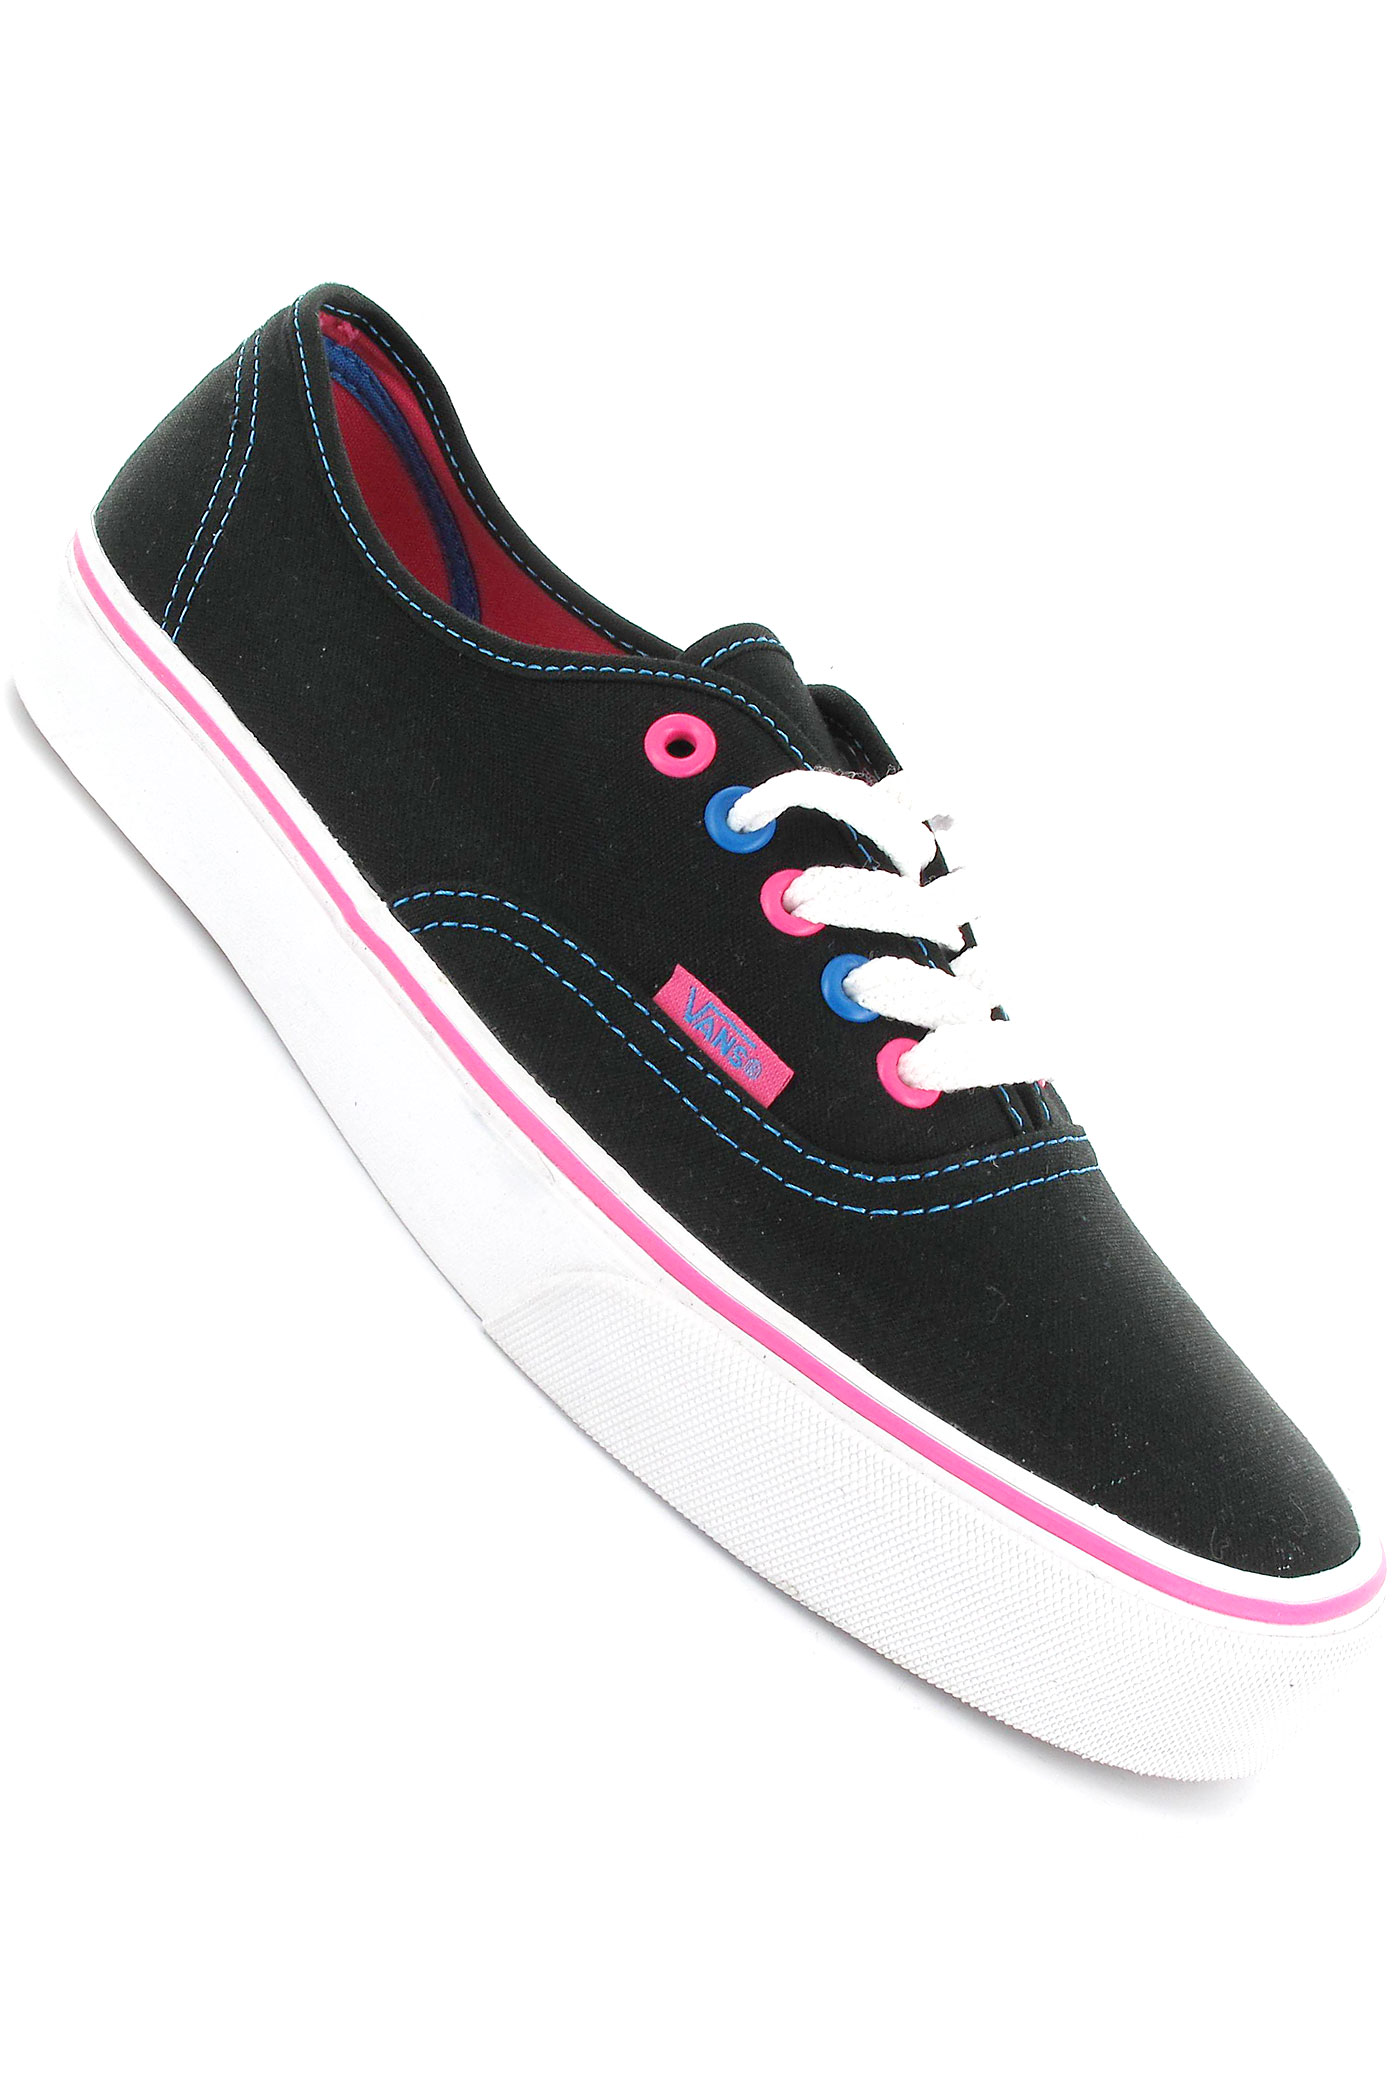 Vans Shoes For Girls Blue And Black